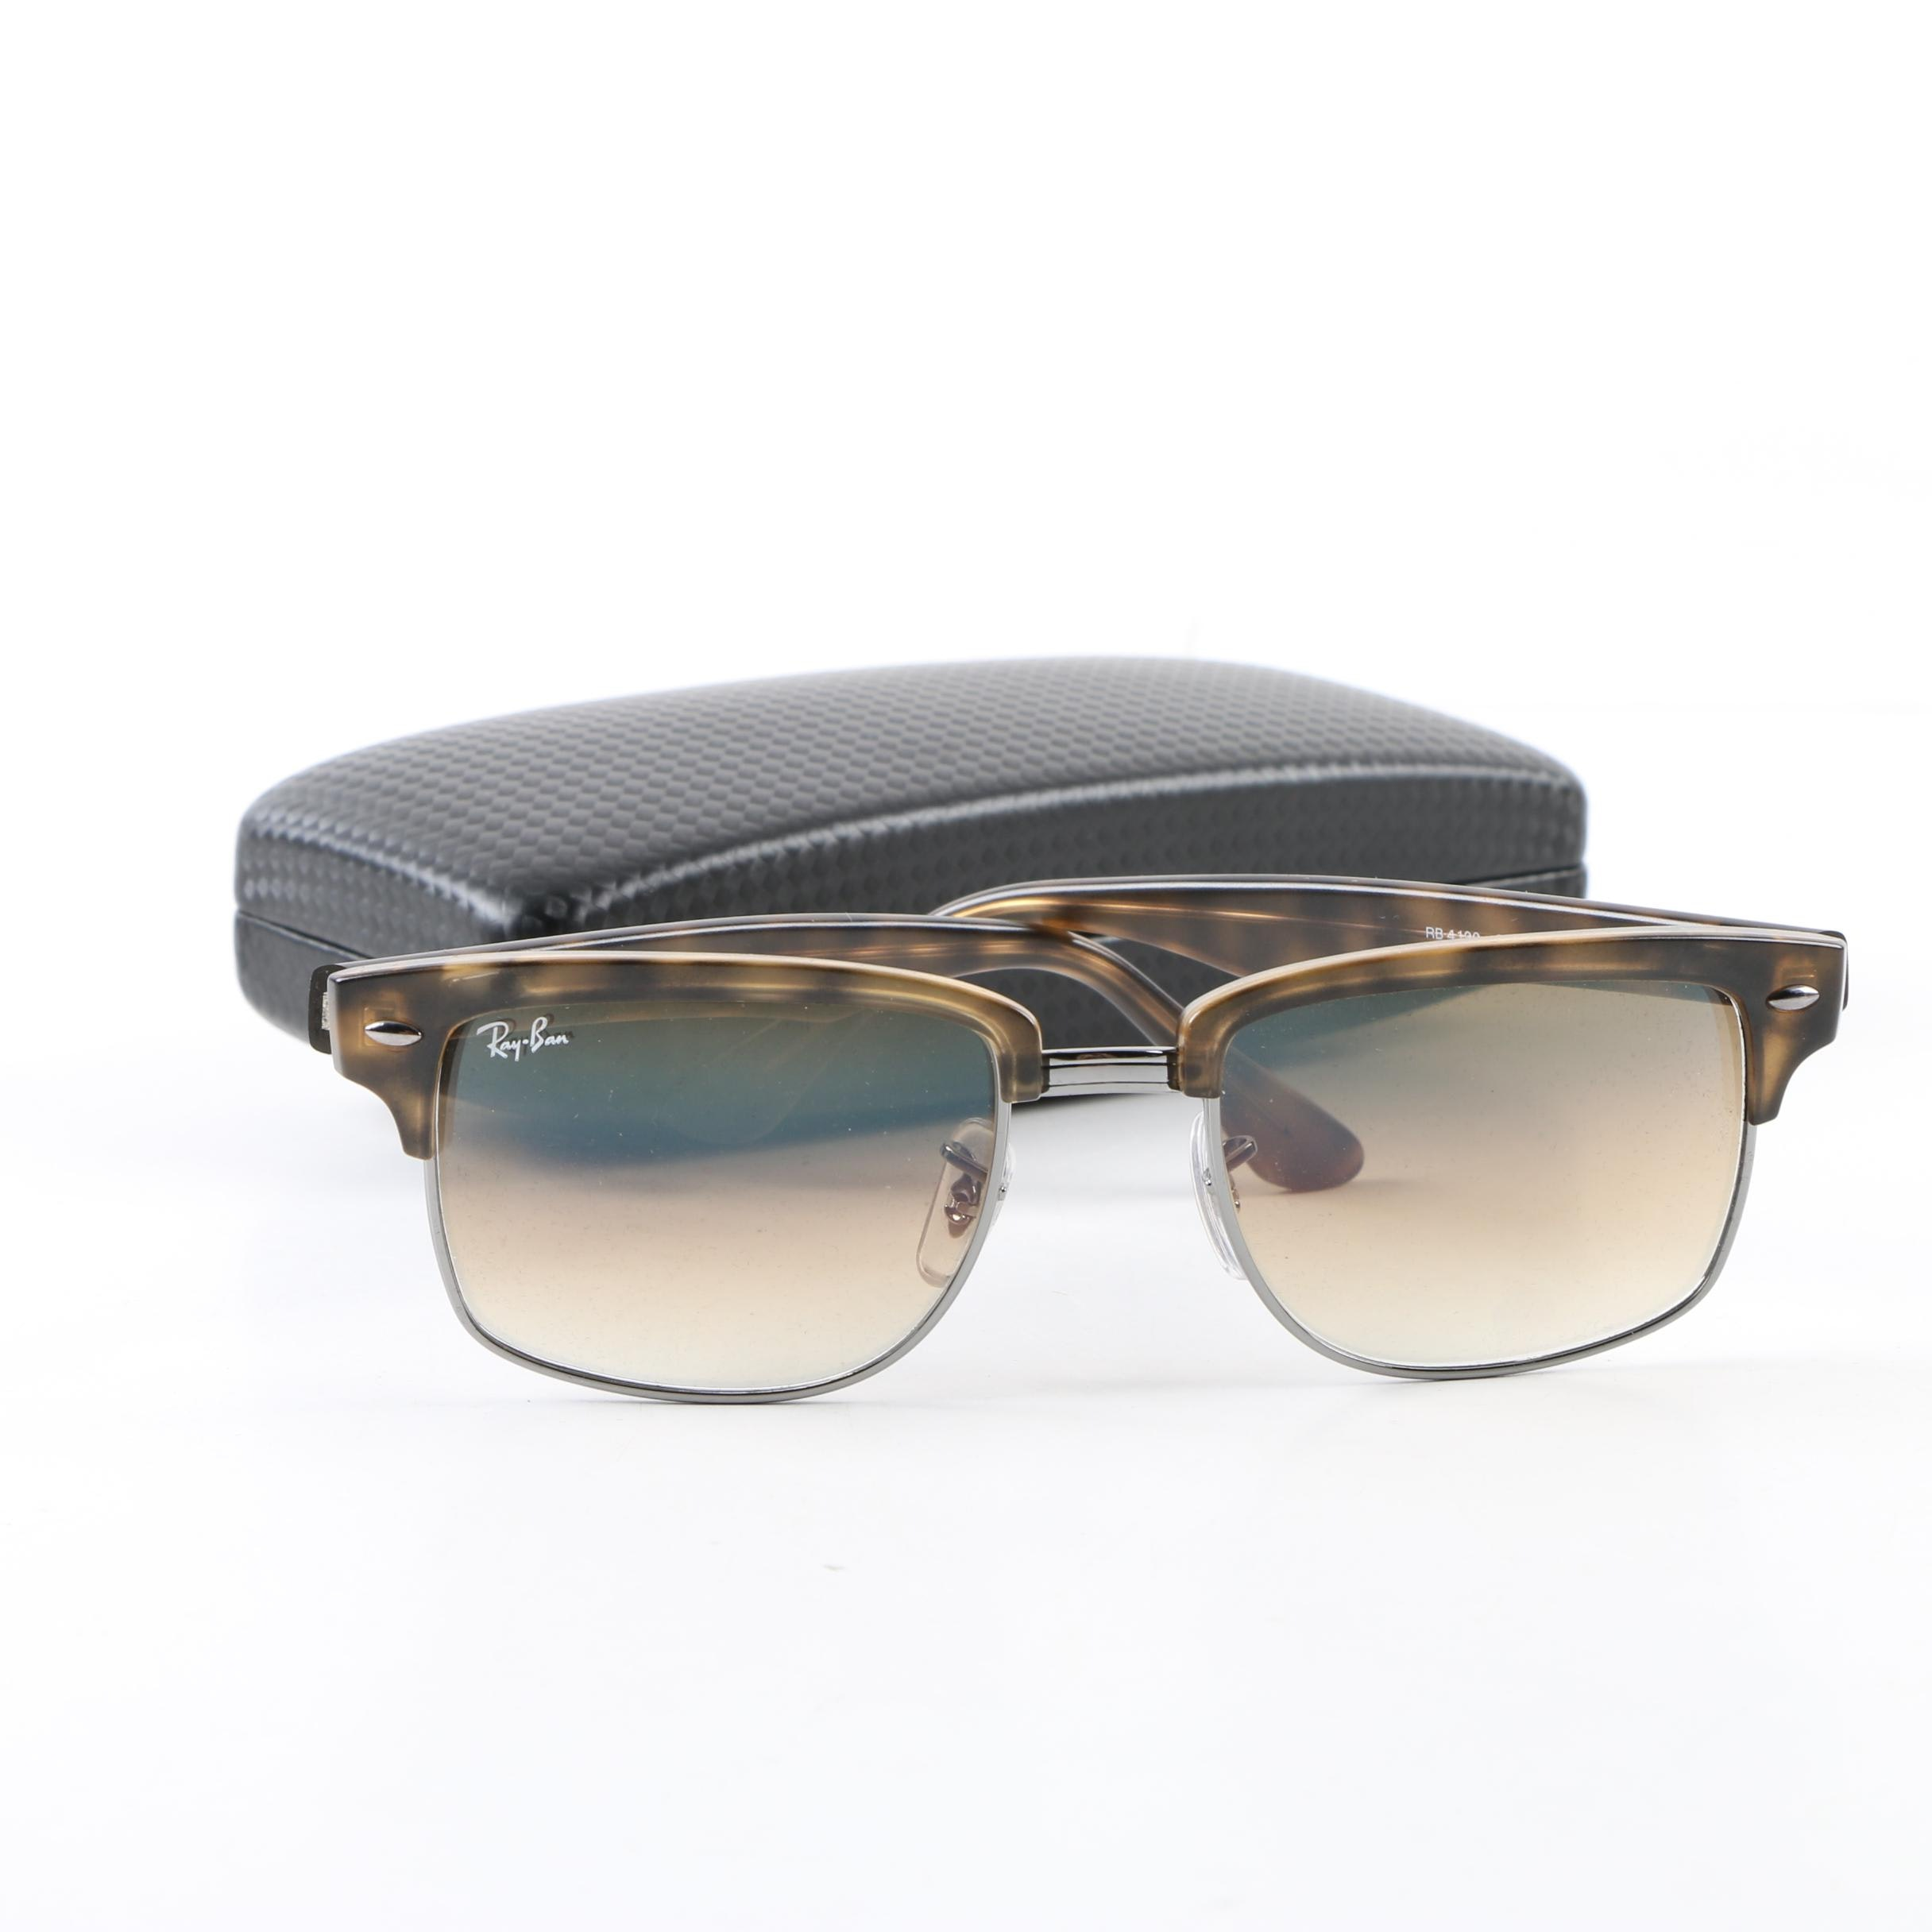 Ray-Ban Browline Sunglasses